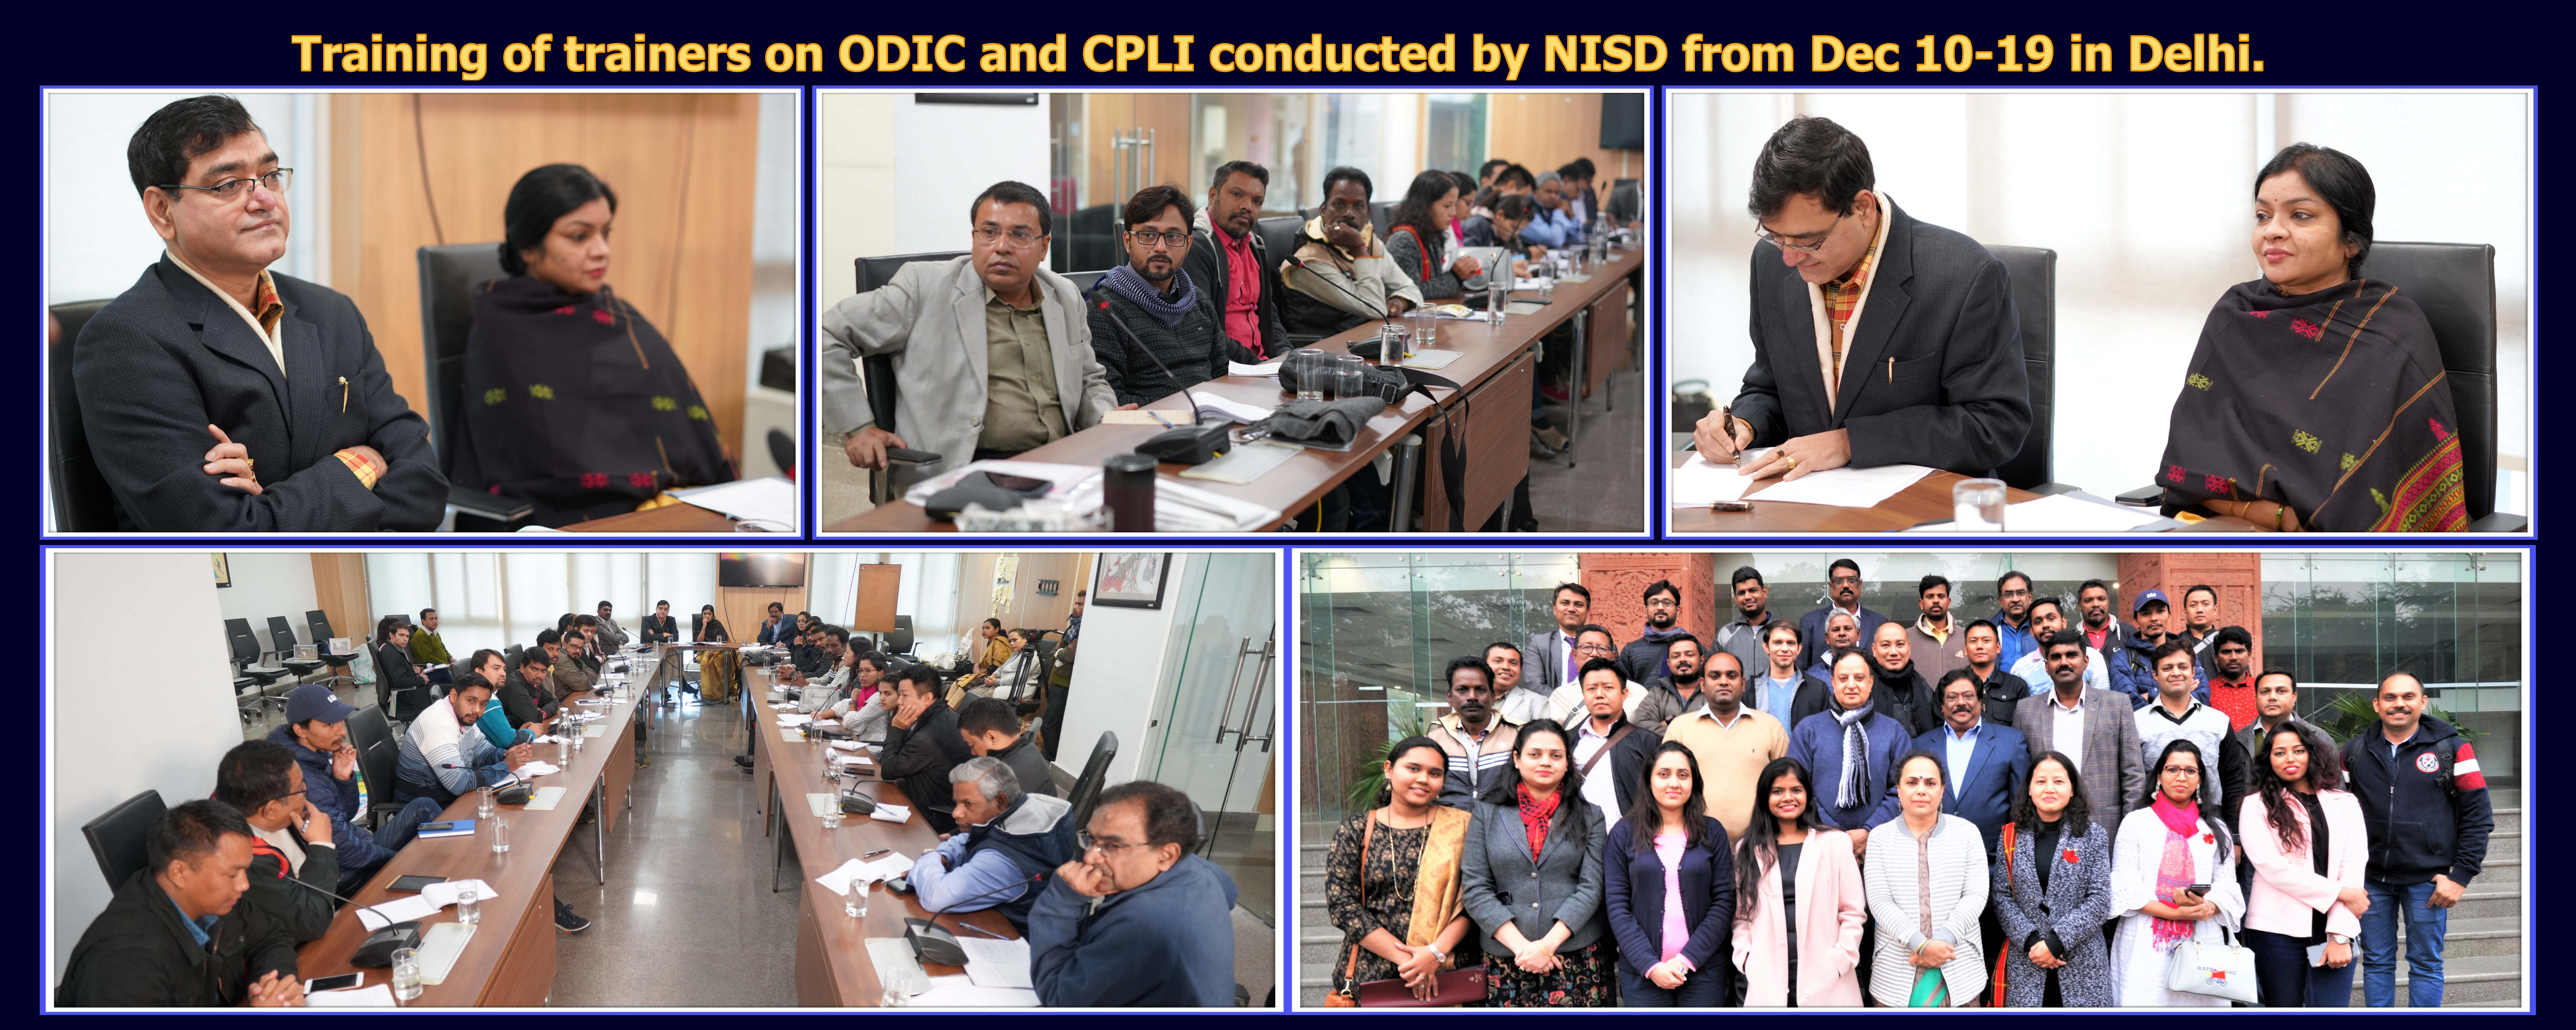 Training of trainers on ODIC and CPLI conducted by NISD from Dec 10-19 in Delhi